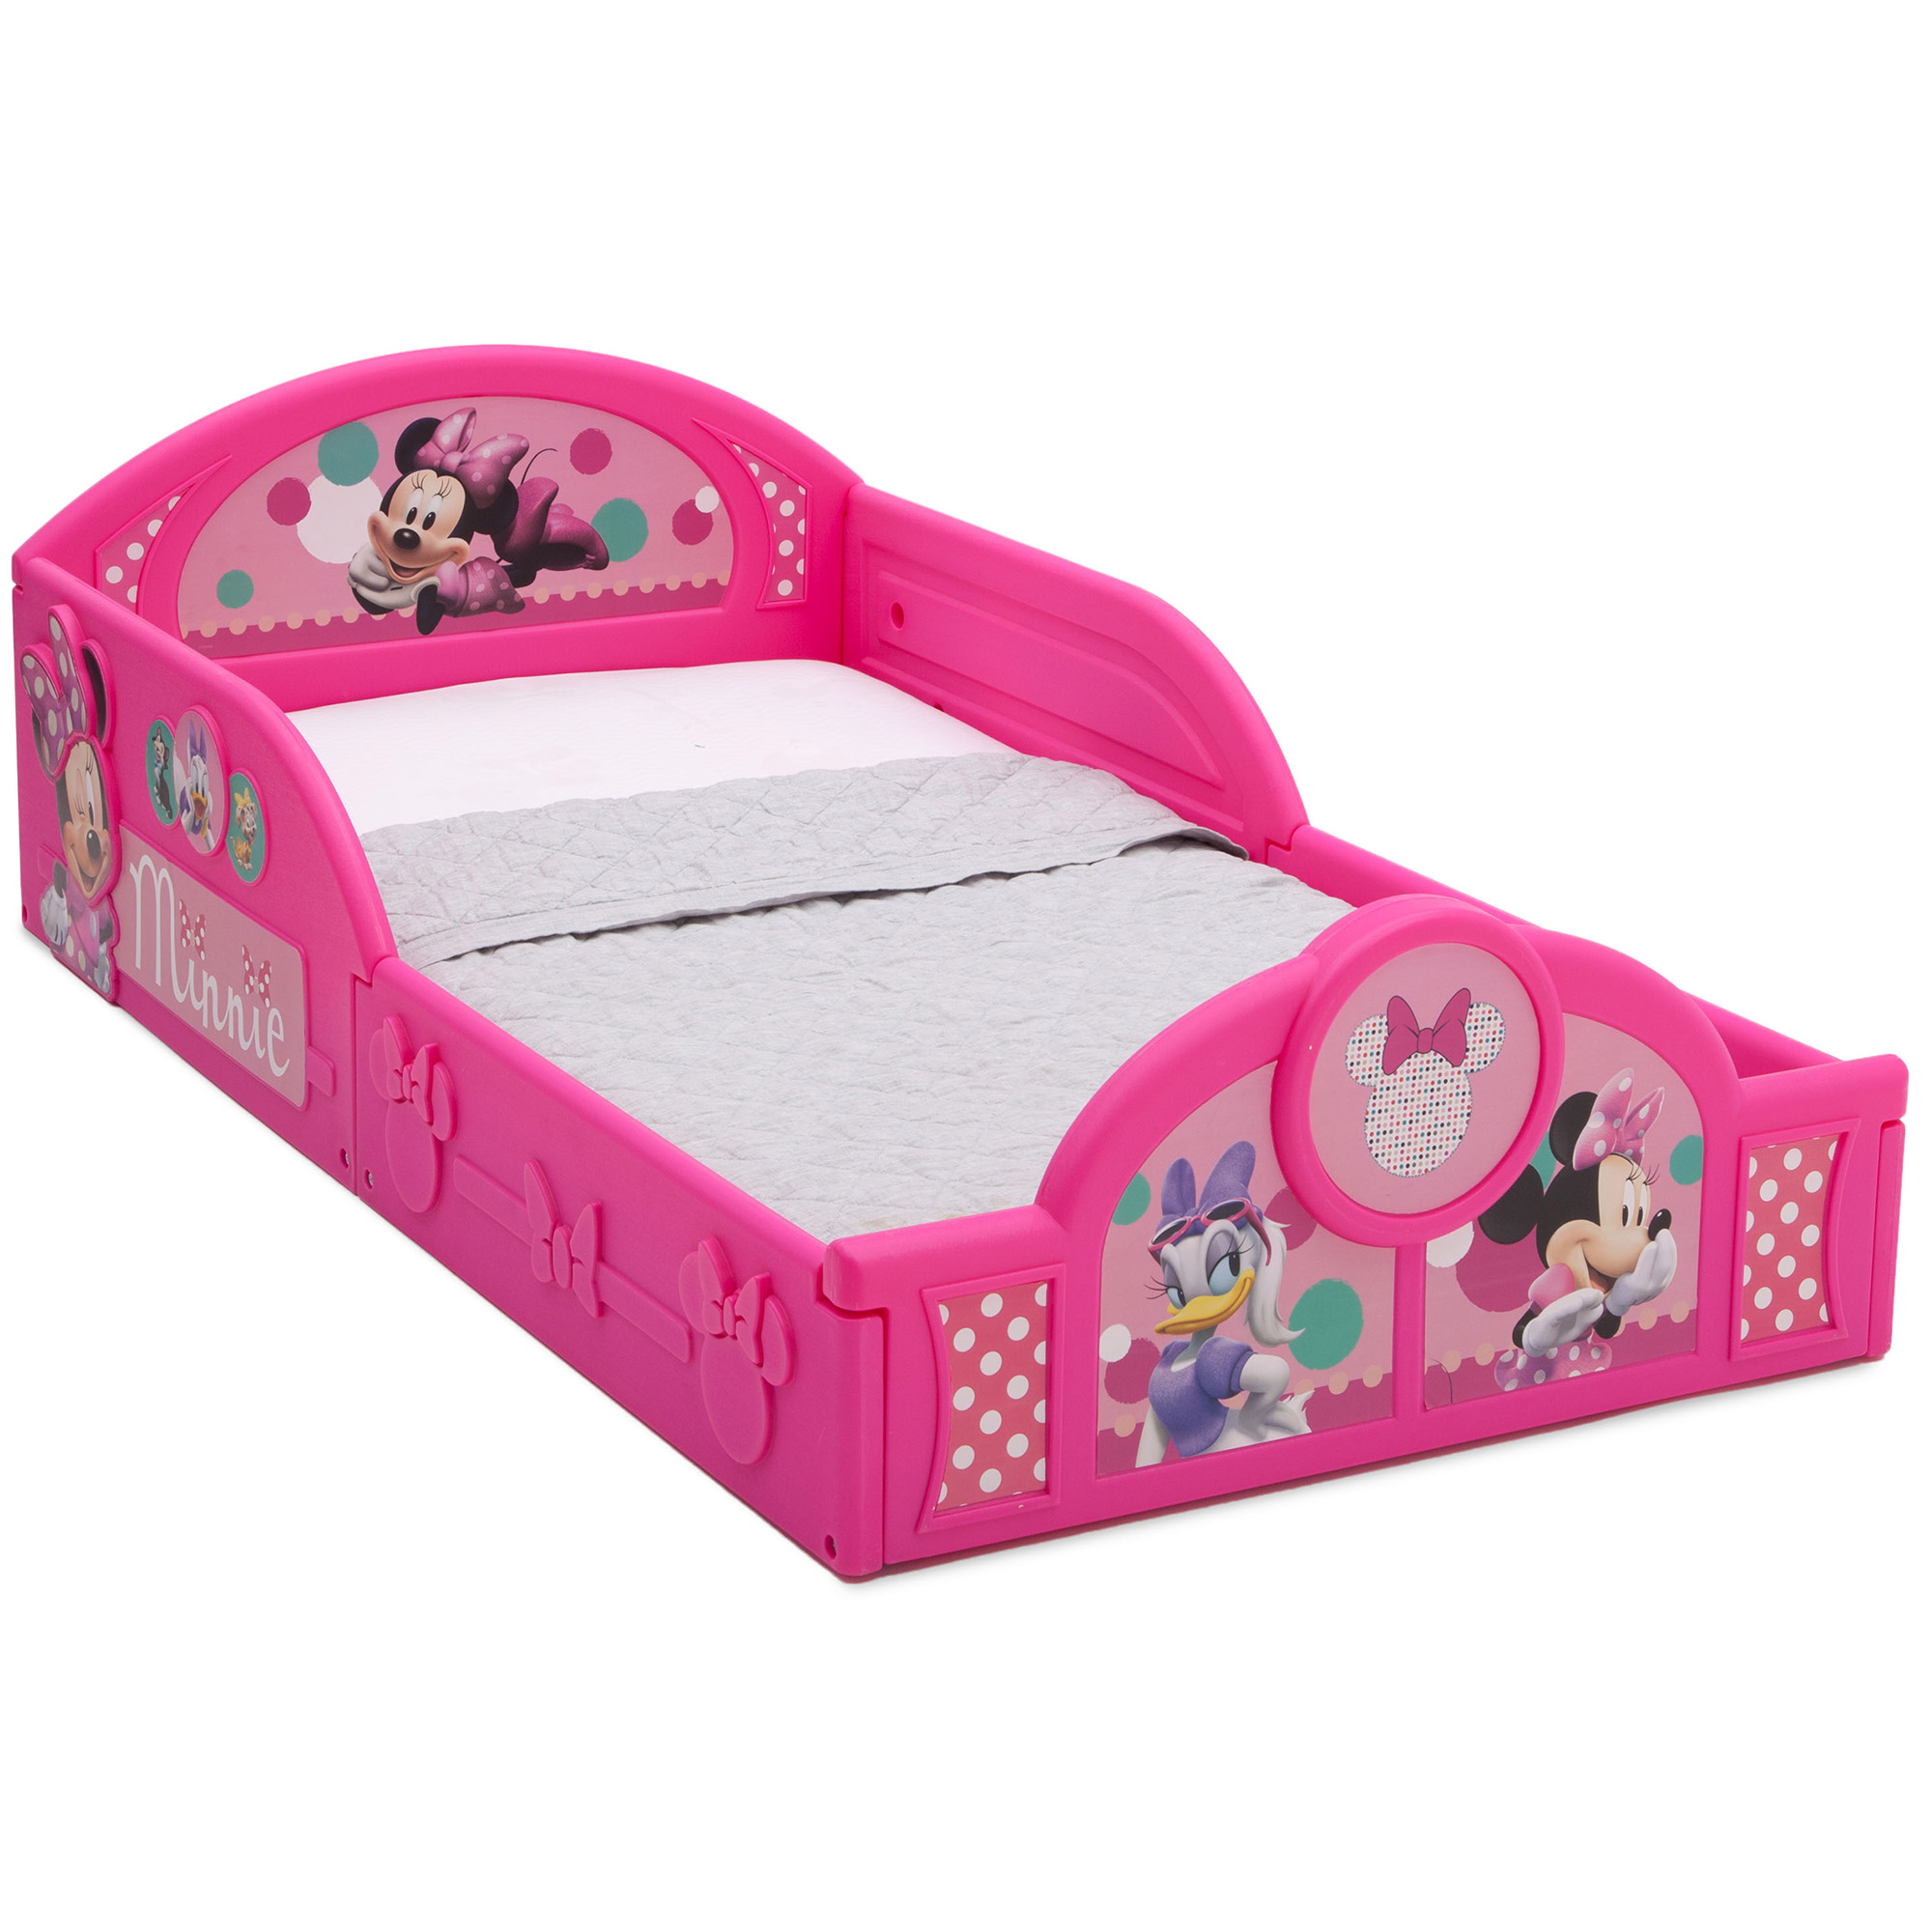 Disney Minnie Mouse Plastic Sleep and Play Toddler Bed by ...